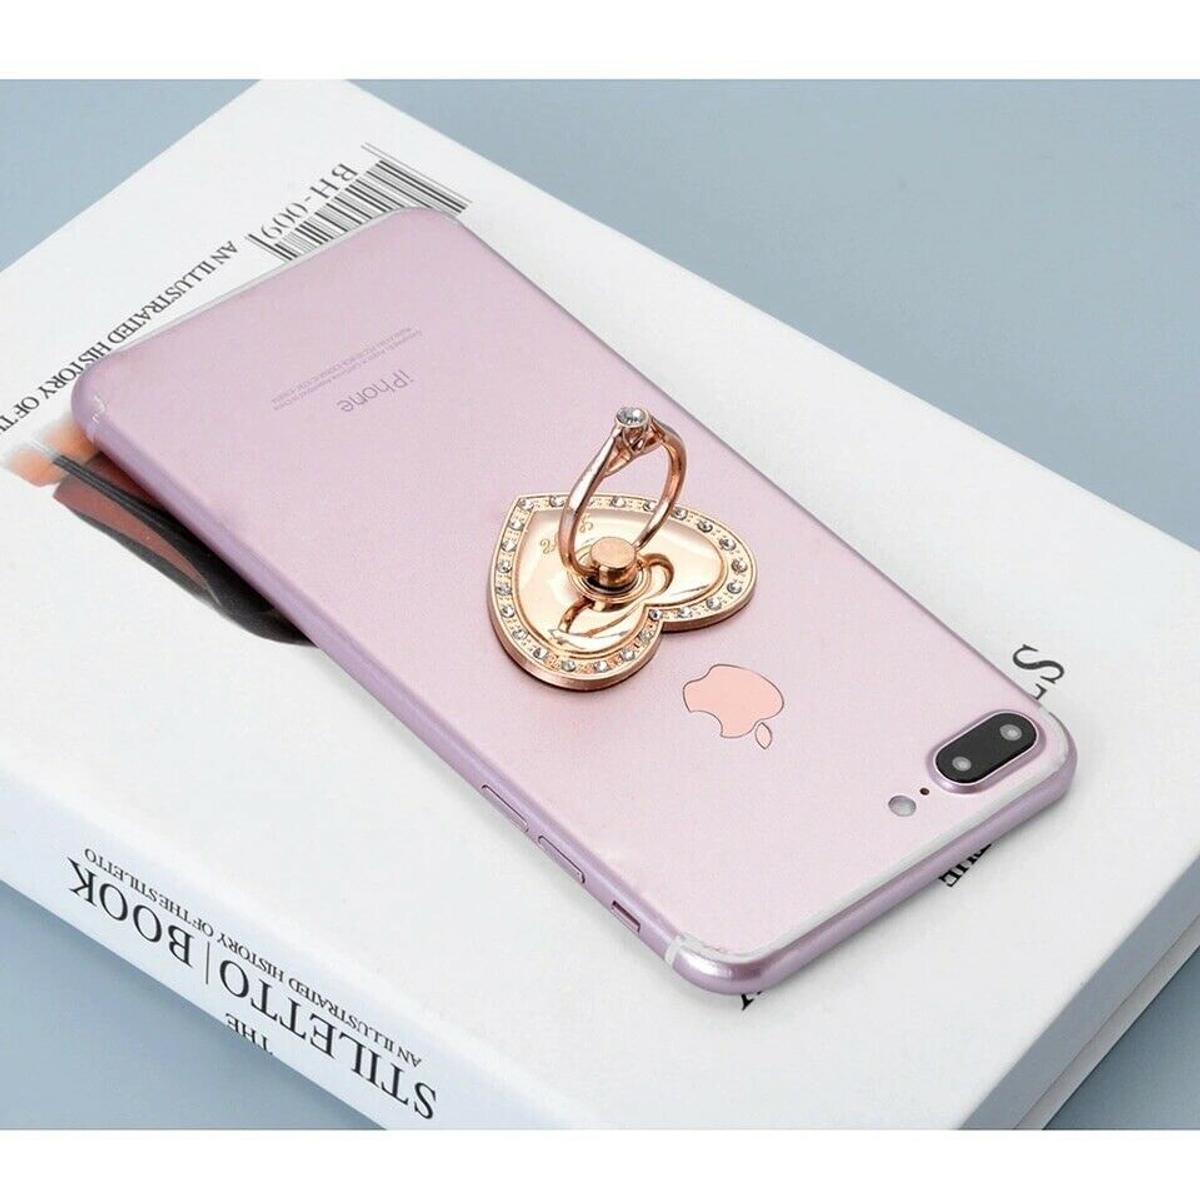 Great gift for your mama sister daughter wife girlfriend nice looking valuable item Universal, For Apple, For HTC, For Huawei, For Nokia, For Samsung, For Sony Ericsson, For Xiaomi